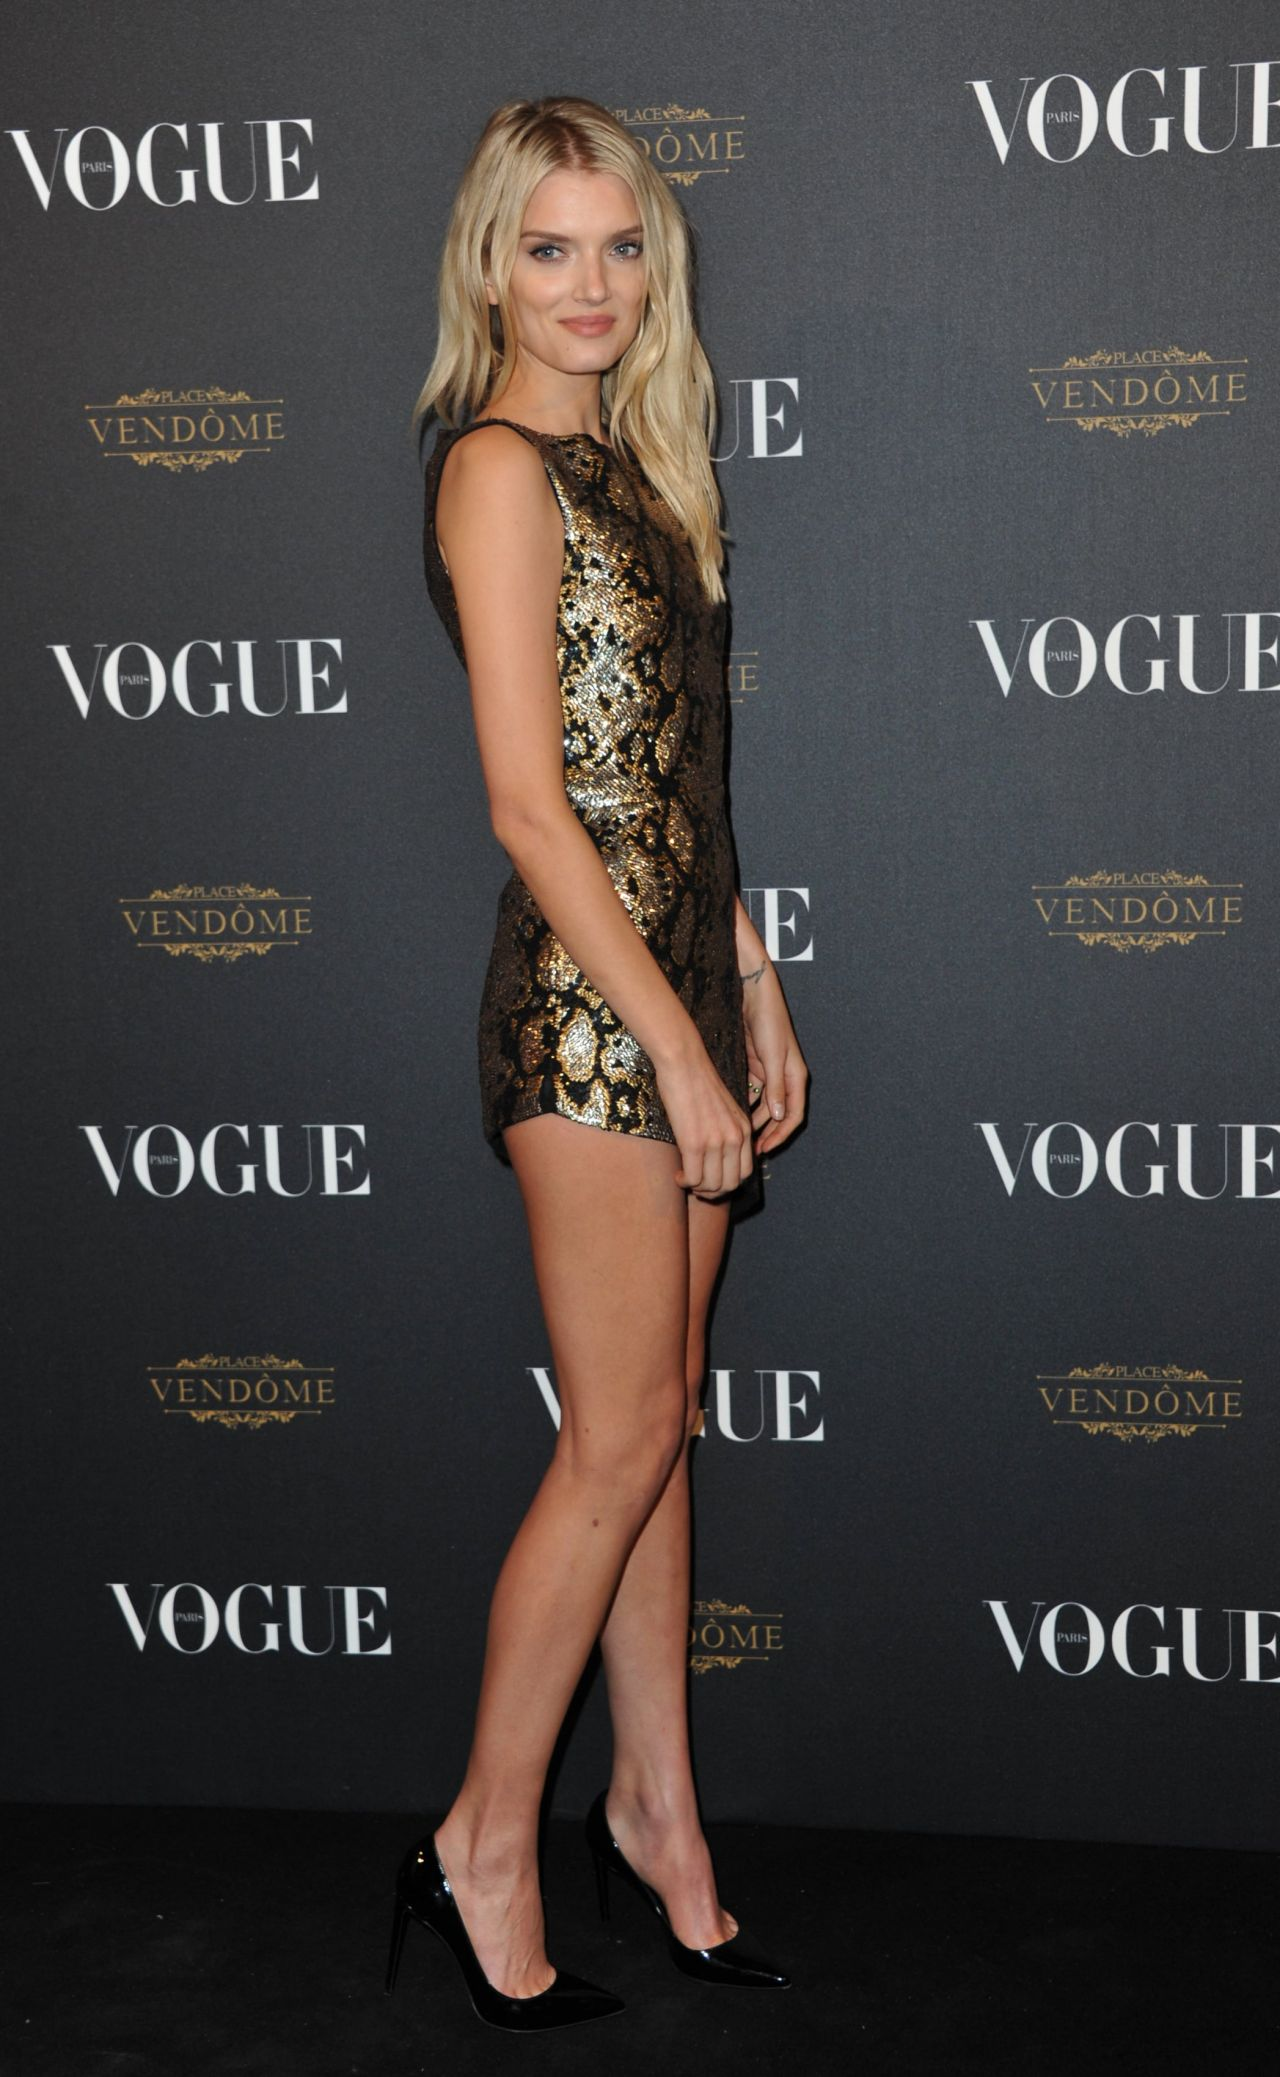 Lily Donaldson legs | Naked body parts of celebrities